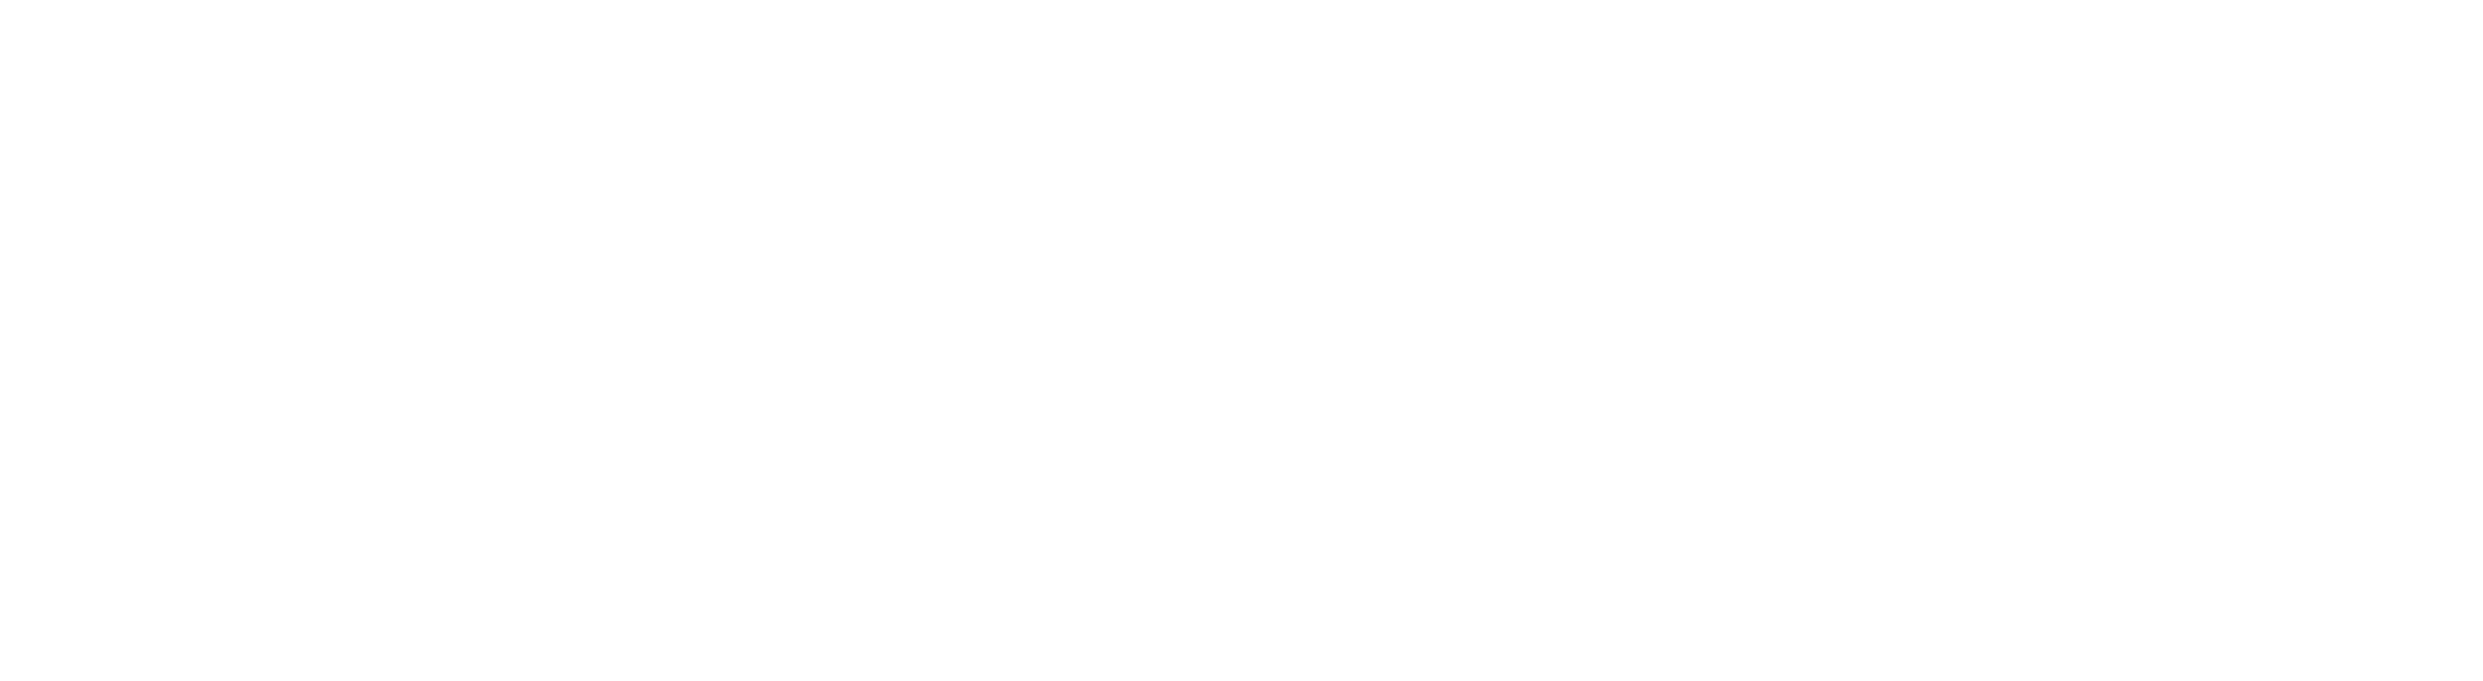 White Swan Productions